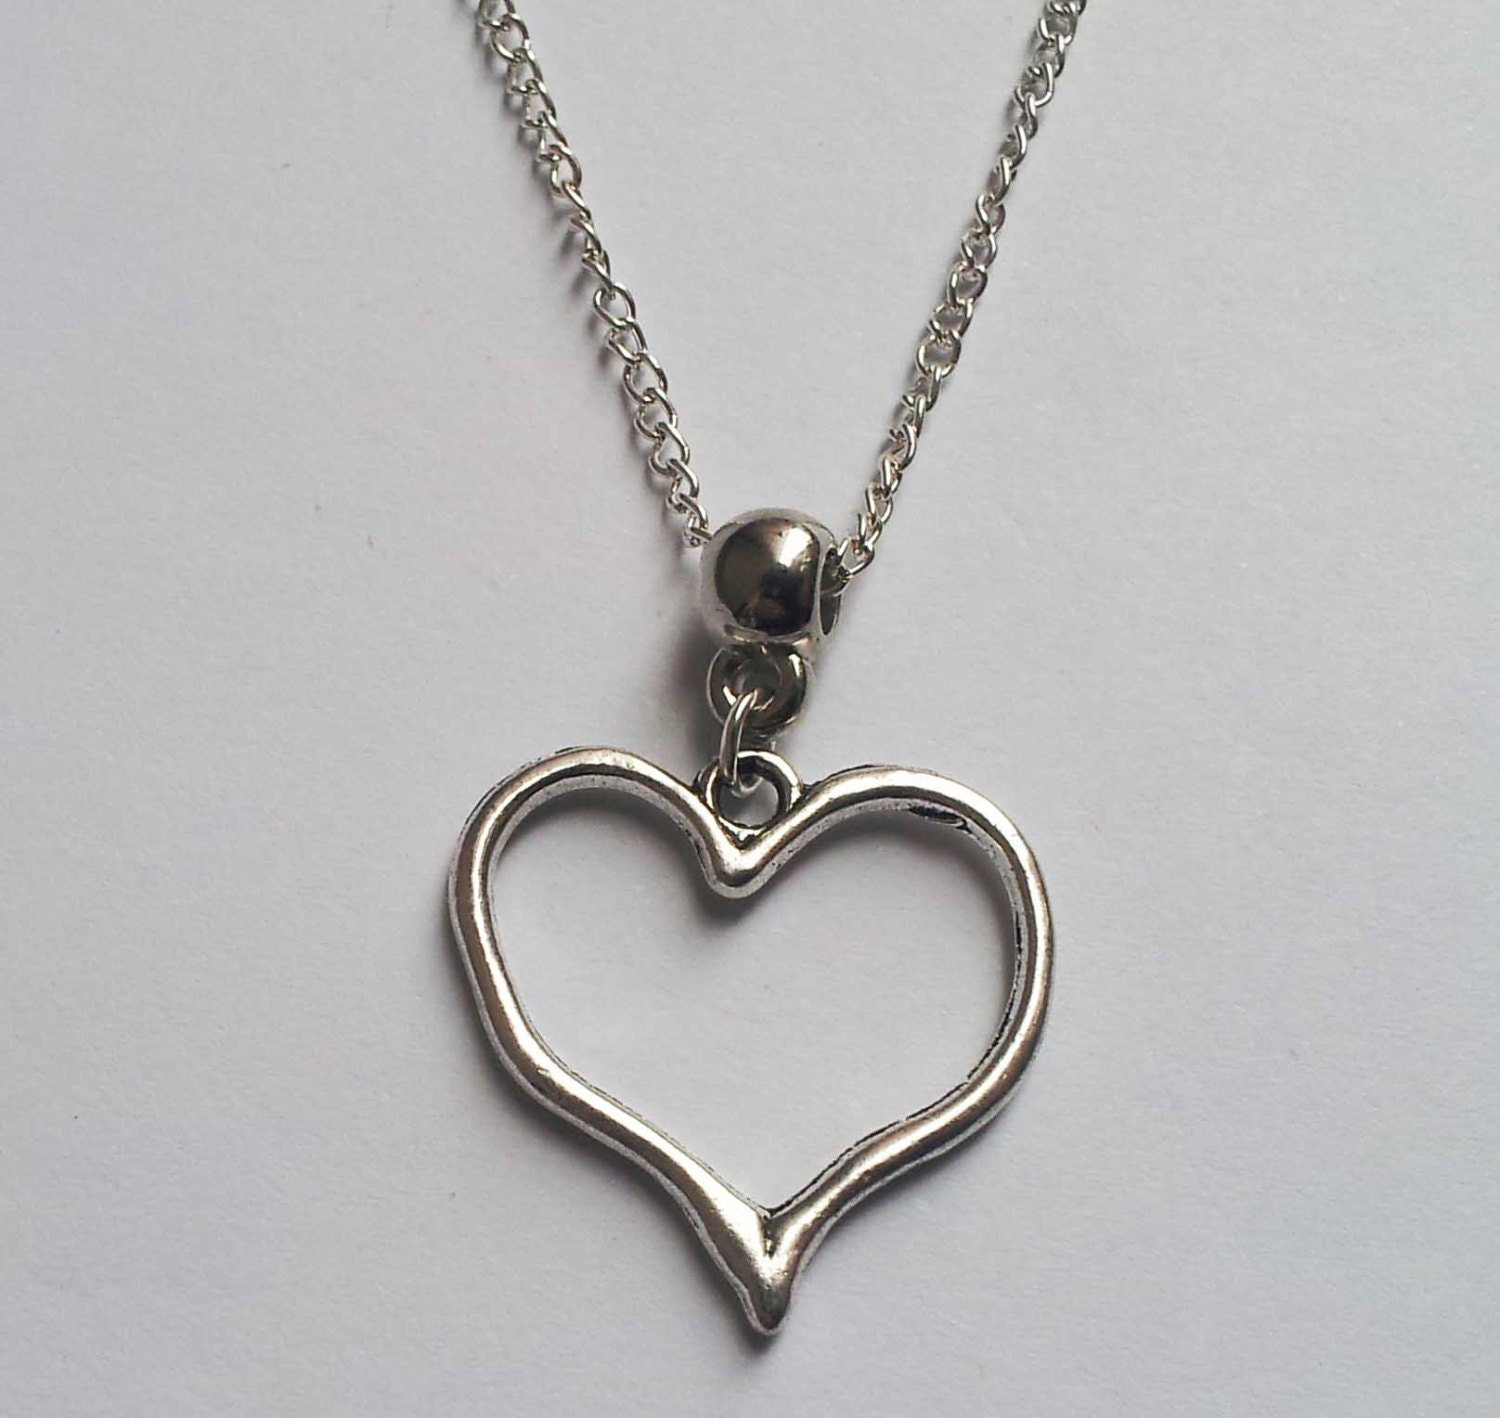 Heart Necklace Silver Heart Necklace Love Necklace